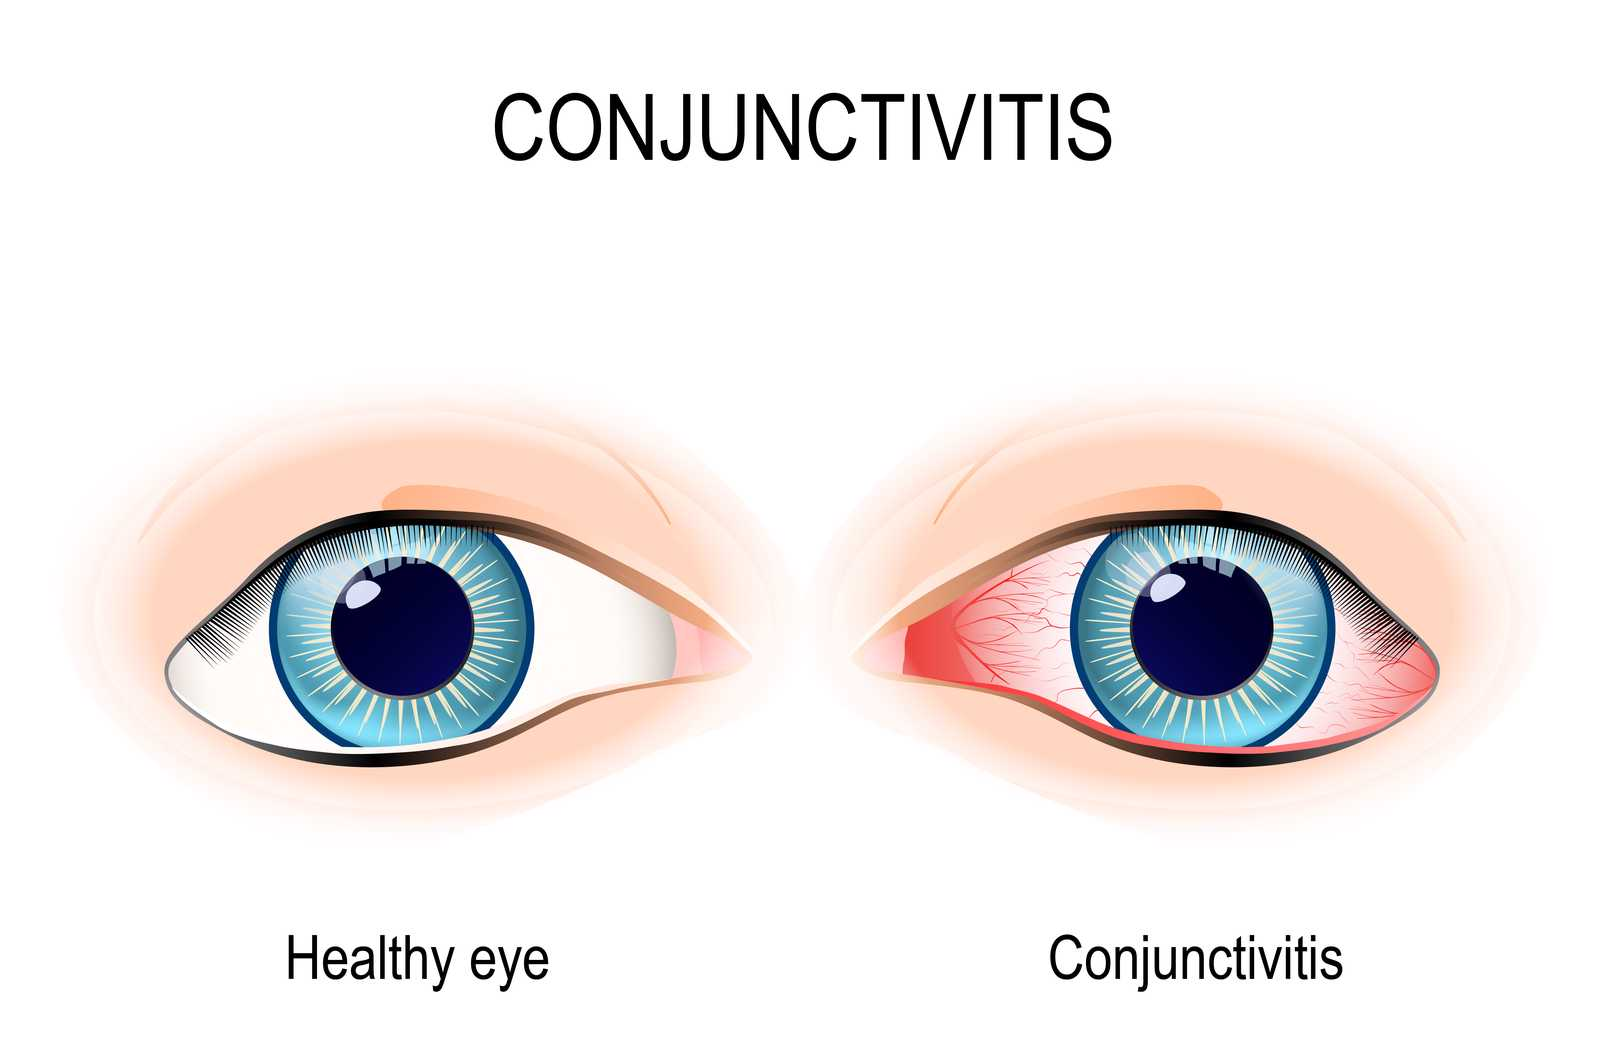 labeled drawing showing healthy eye side by side with an eye affected by the redness and irritation of conjunctivitis